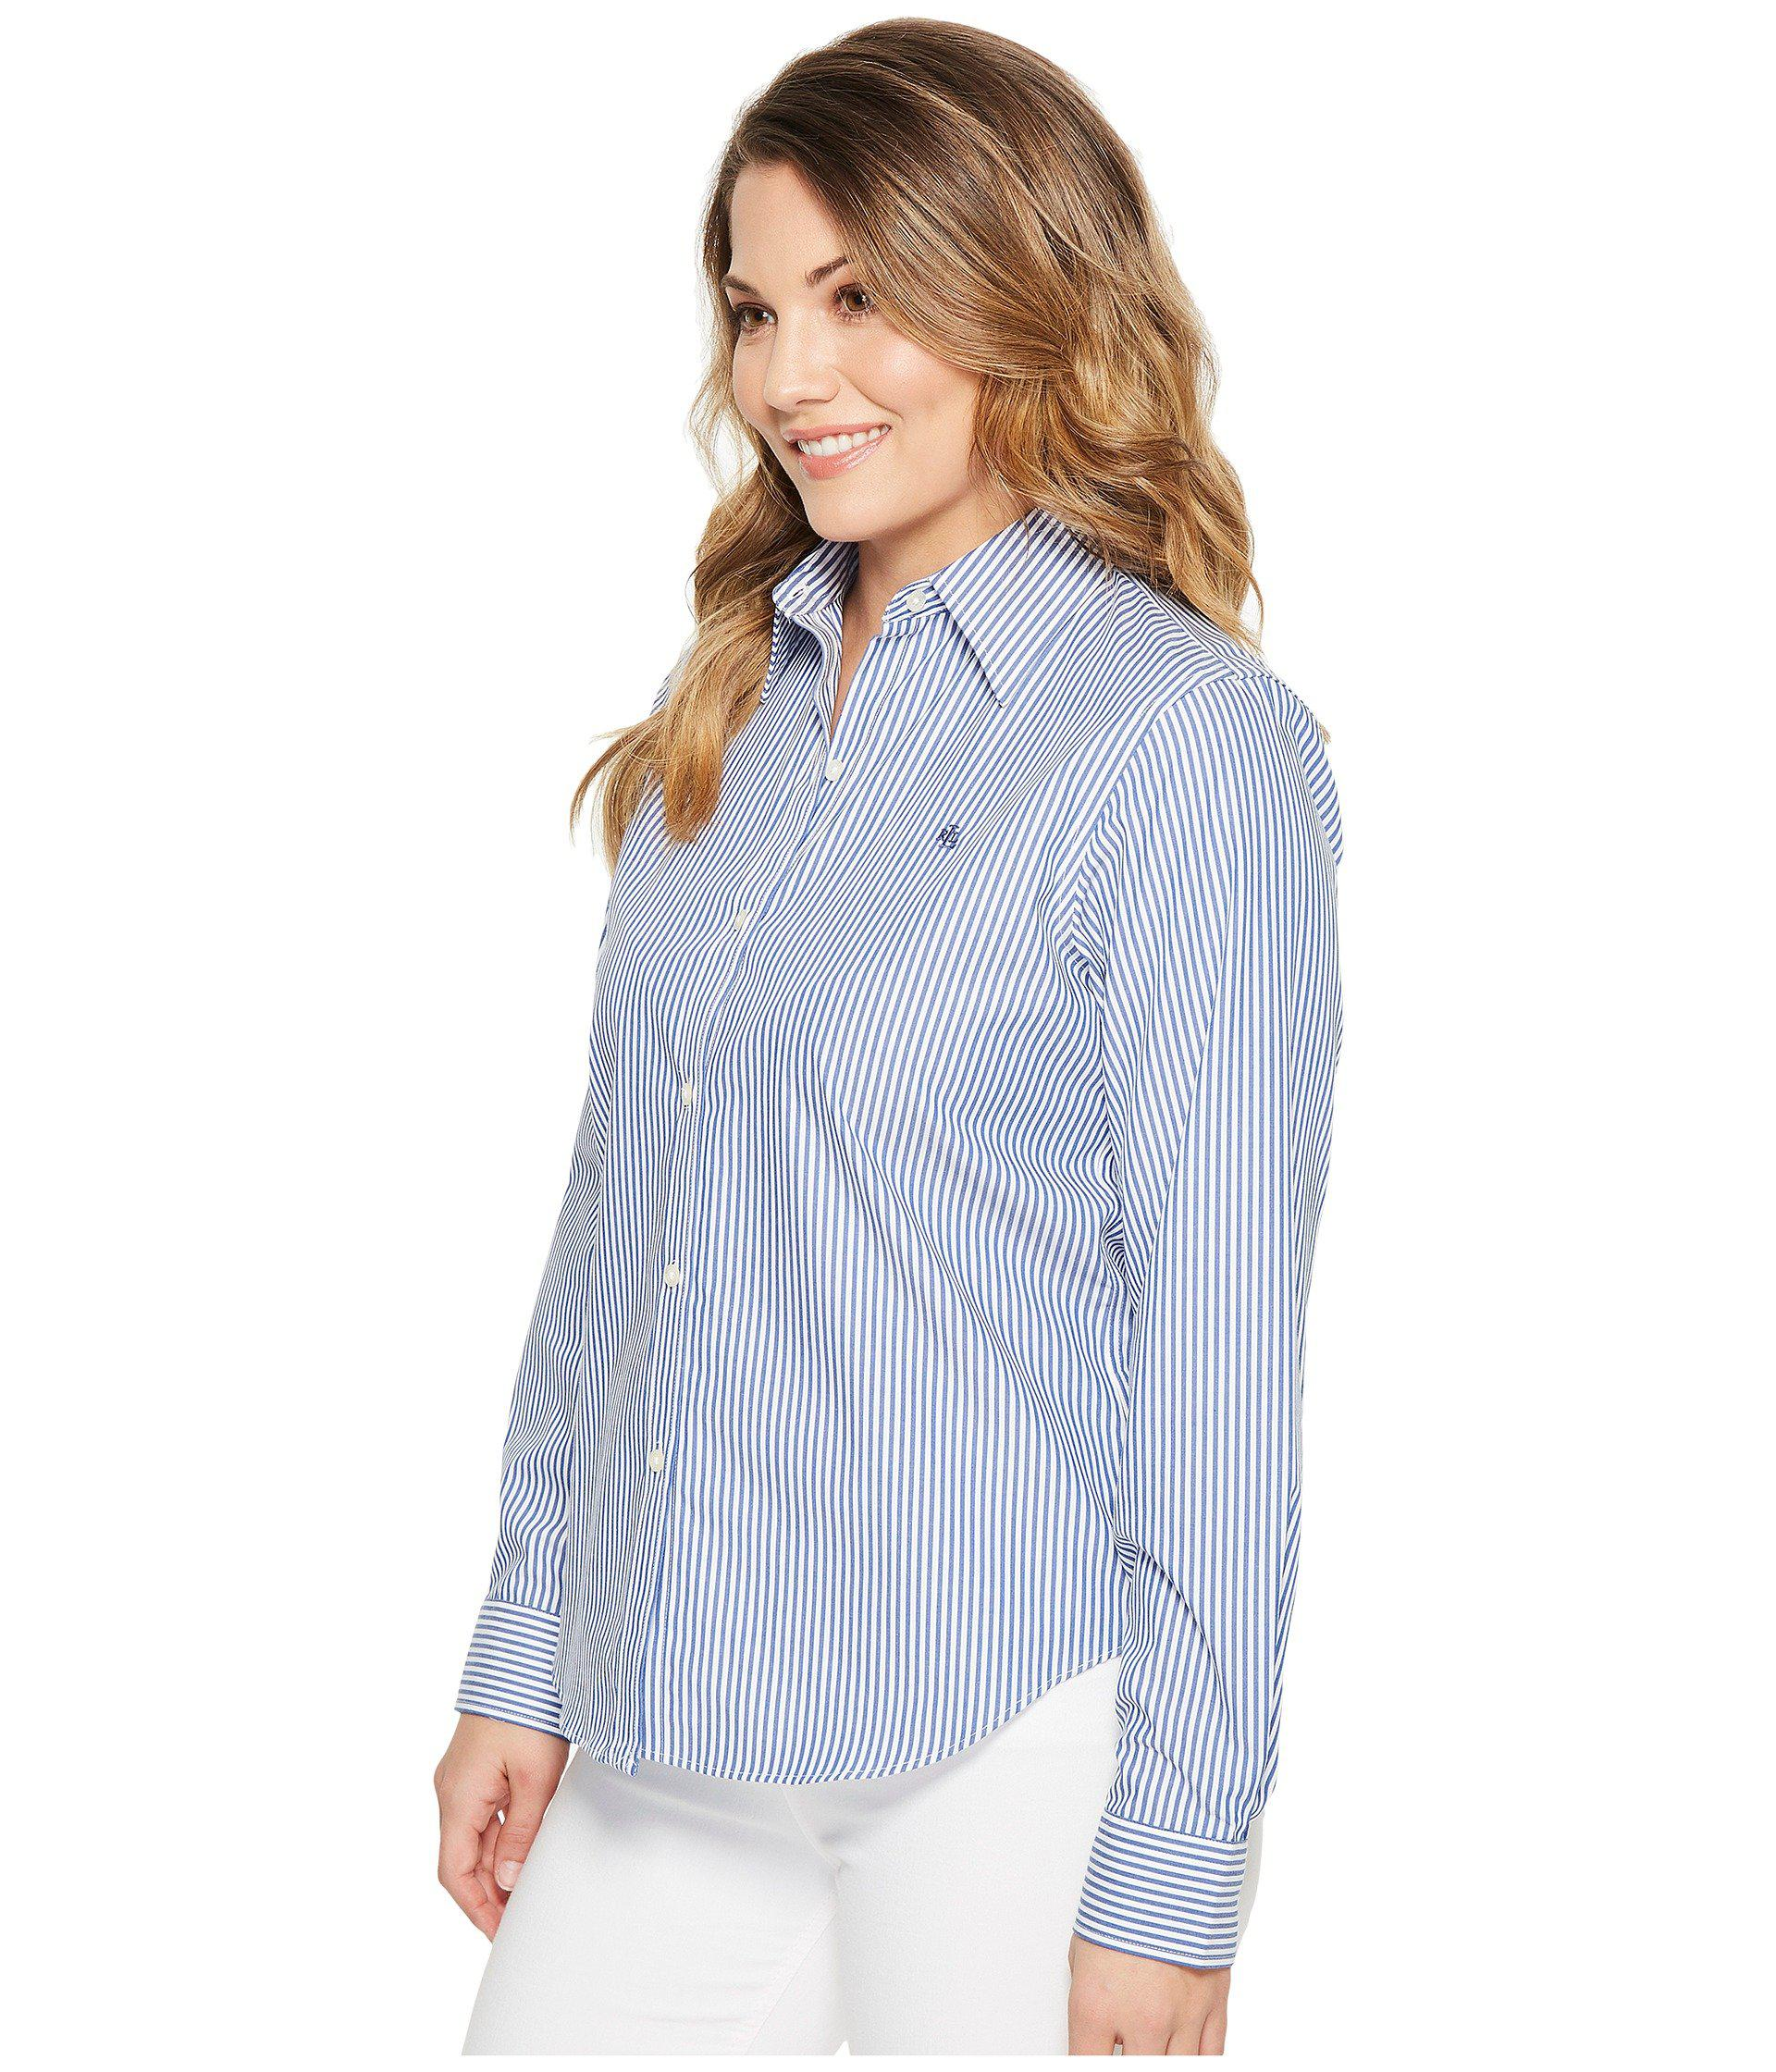 d6490d2e4fe Lyst - Lauren by Ralph Lauren Petite Striped Cotton Shirt (blue white)  Women s Clothing in Blue